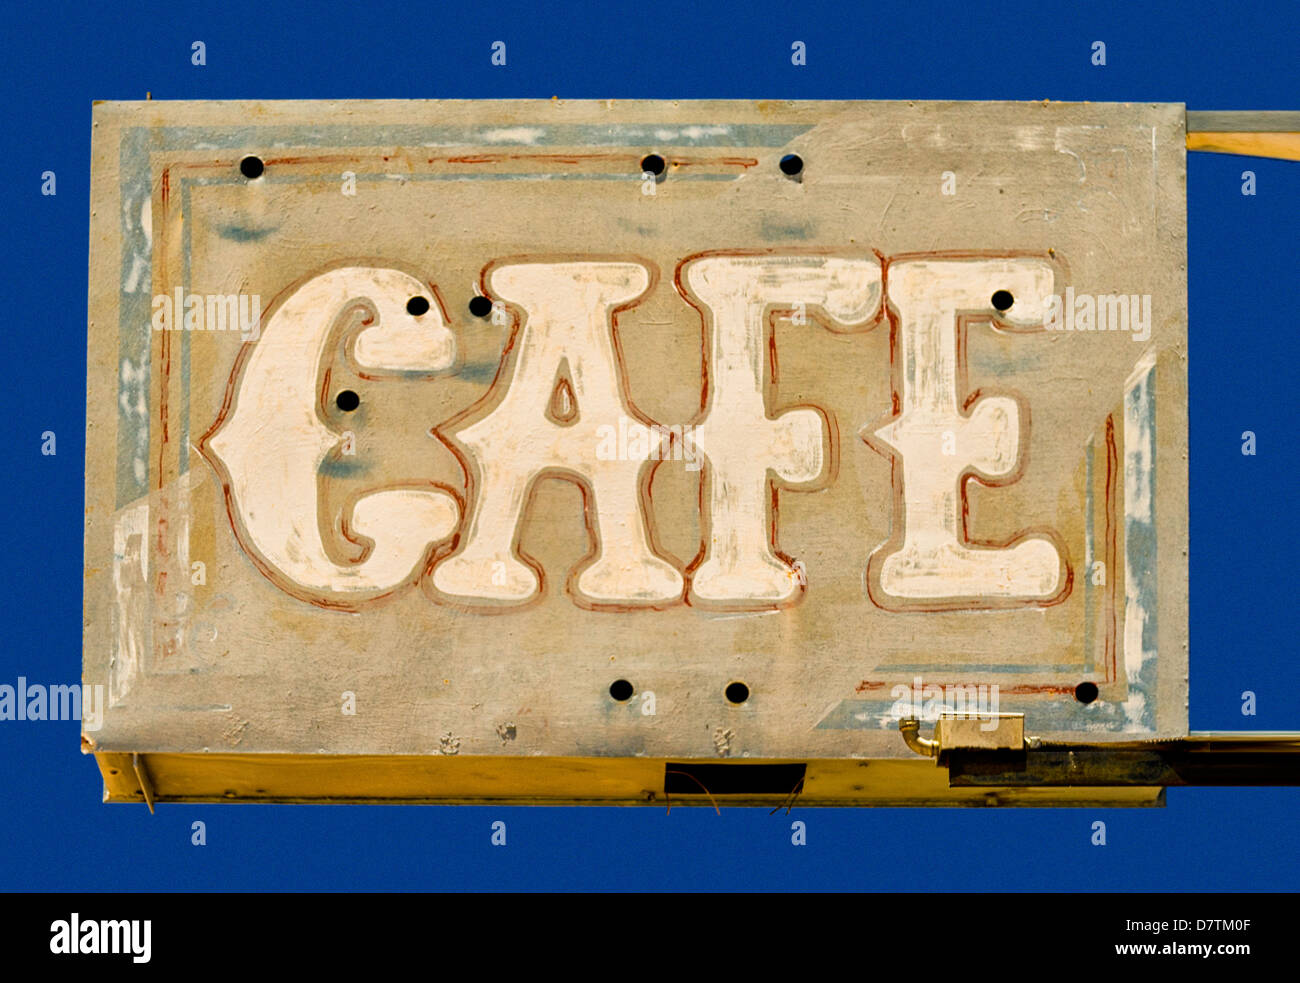 Desert Patina, a faded cafe sign,on Old Route 66. - Stock Image